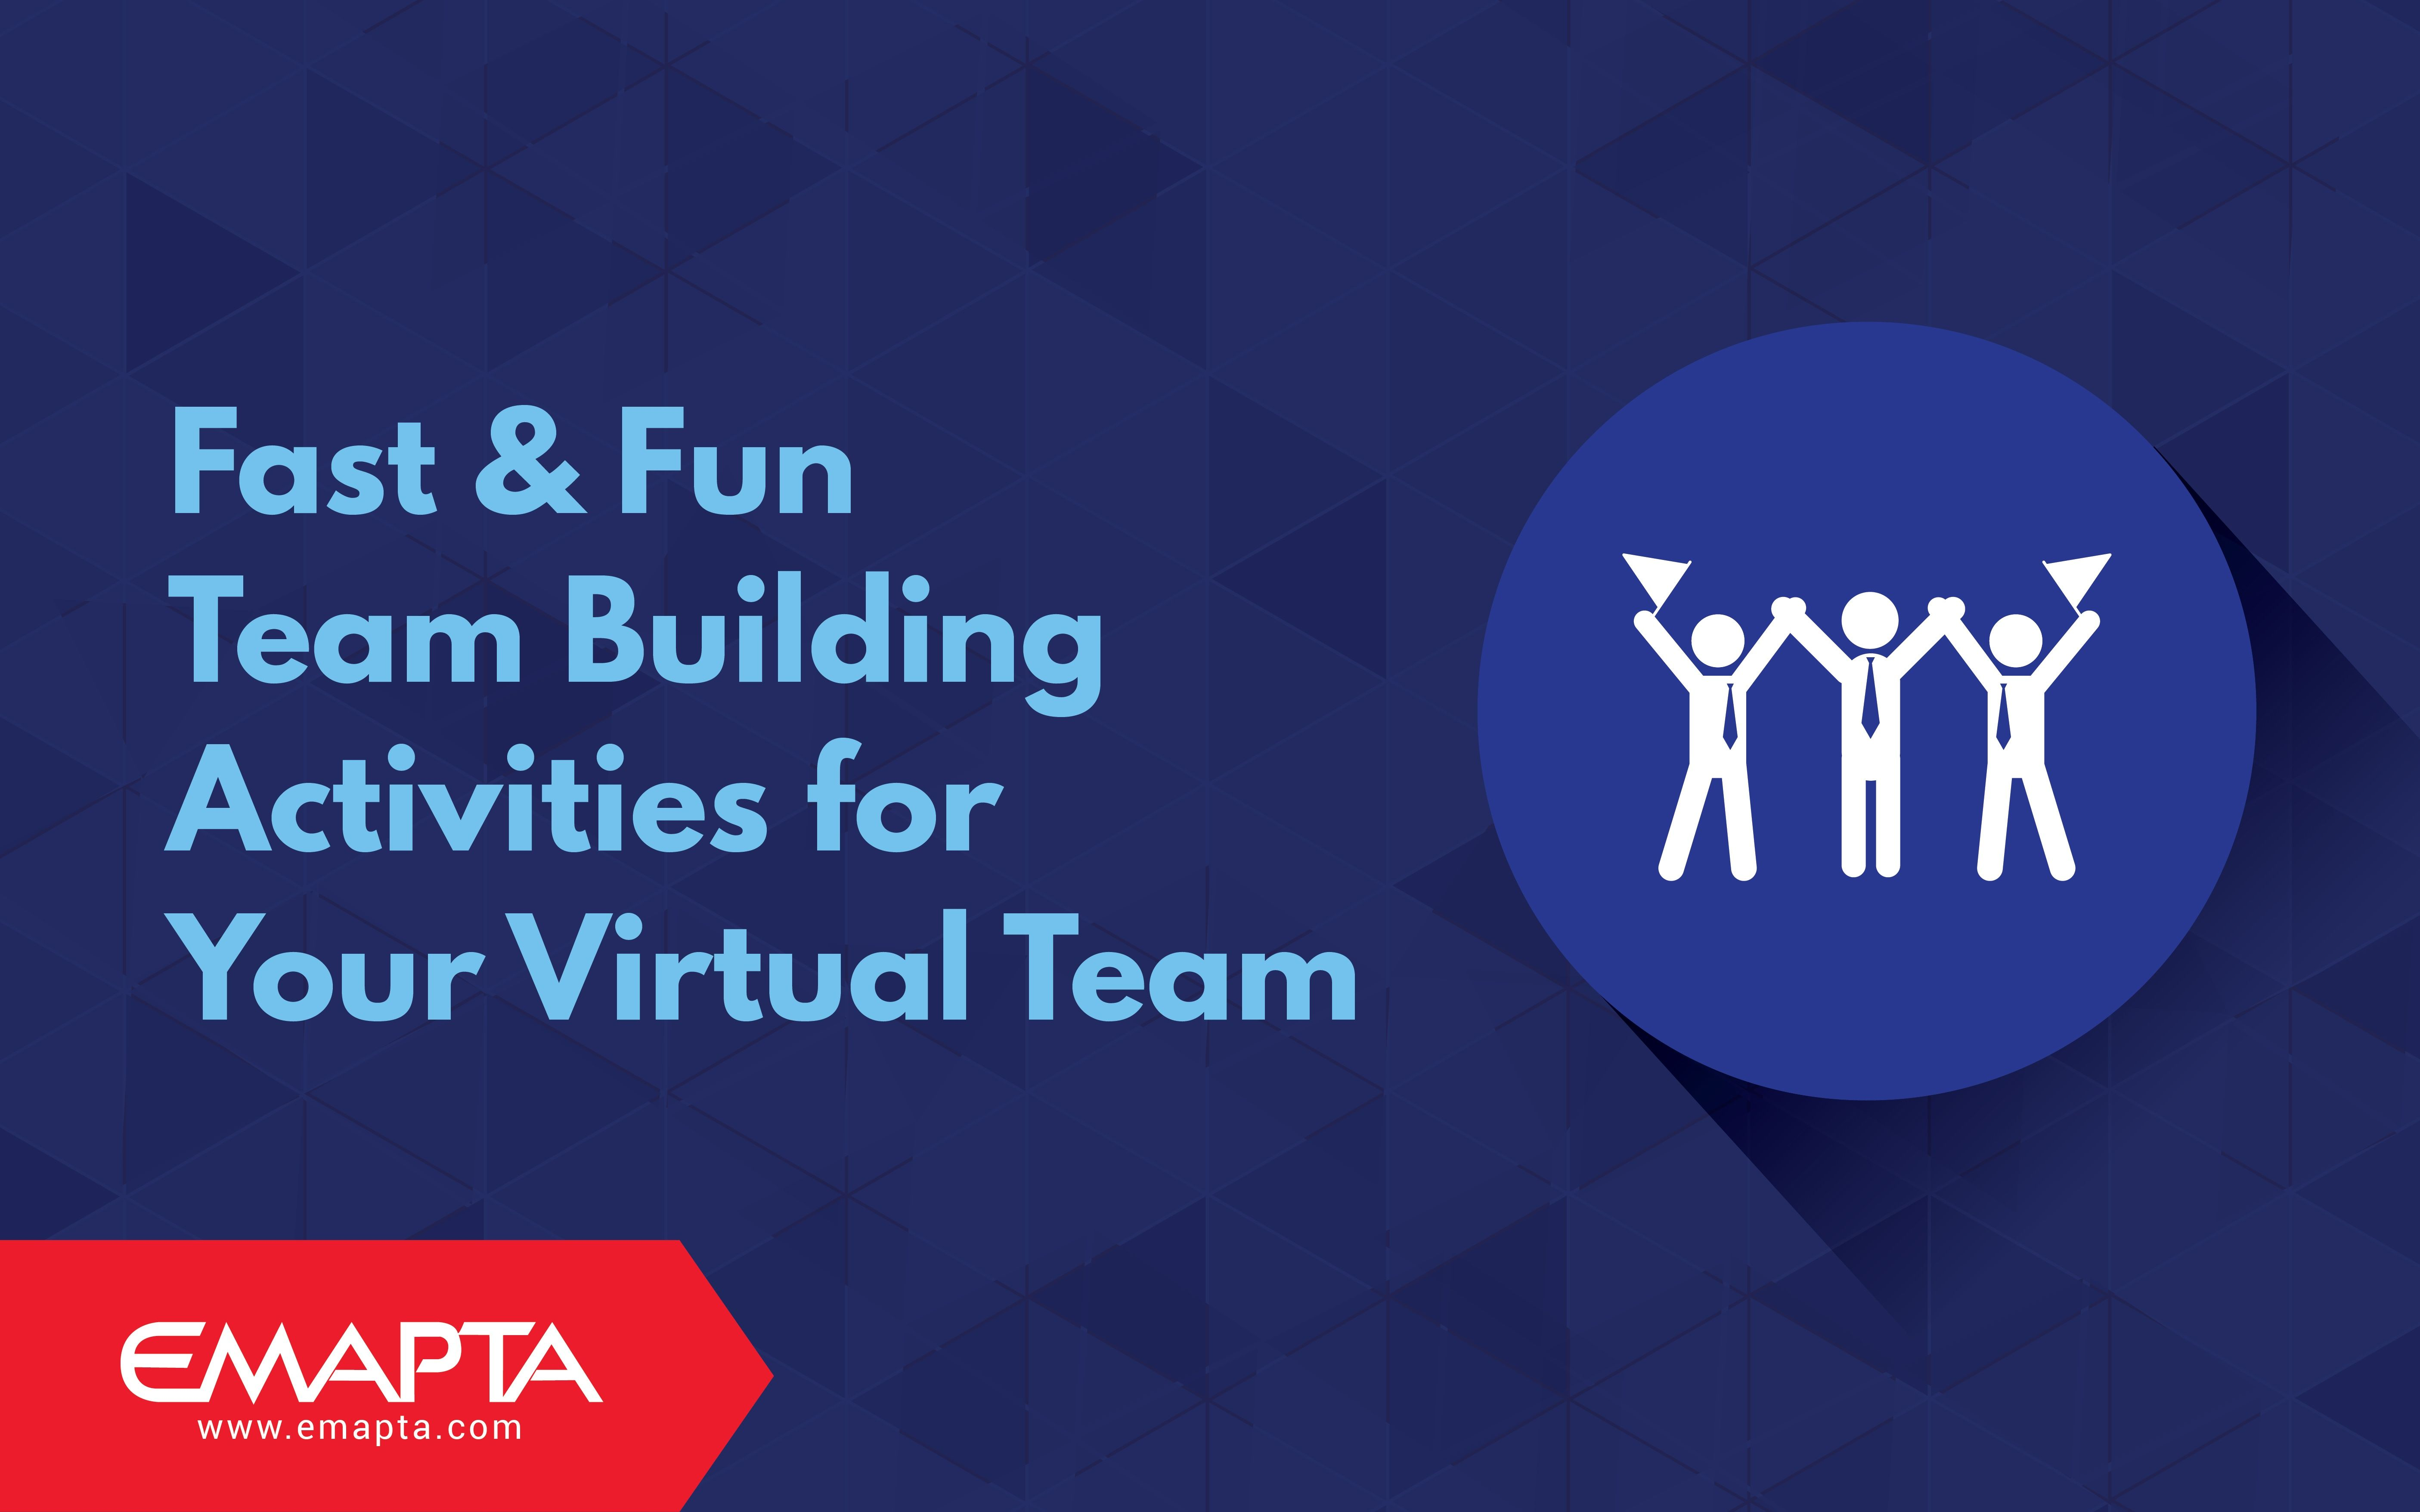 Fast & Fun Team Building Activities For Your Virtual Team